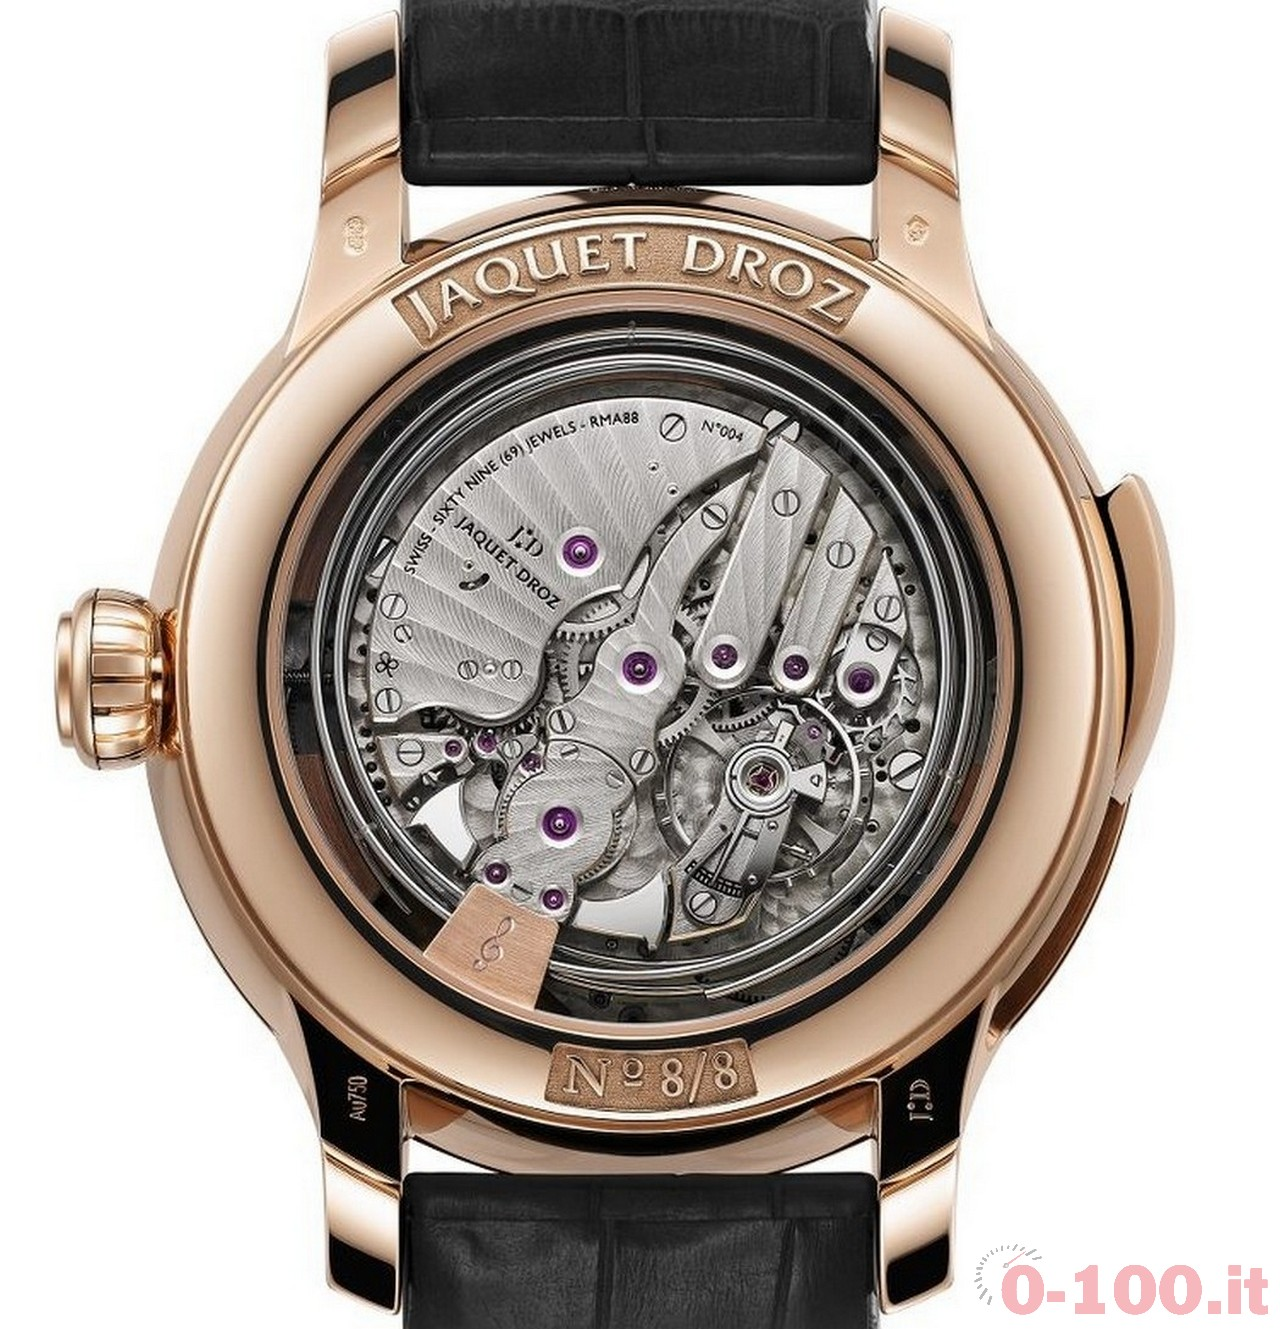 jaquet-droz-the-bird-repeater-geneva-ref-j031033204_0-100_5